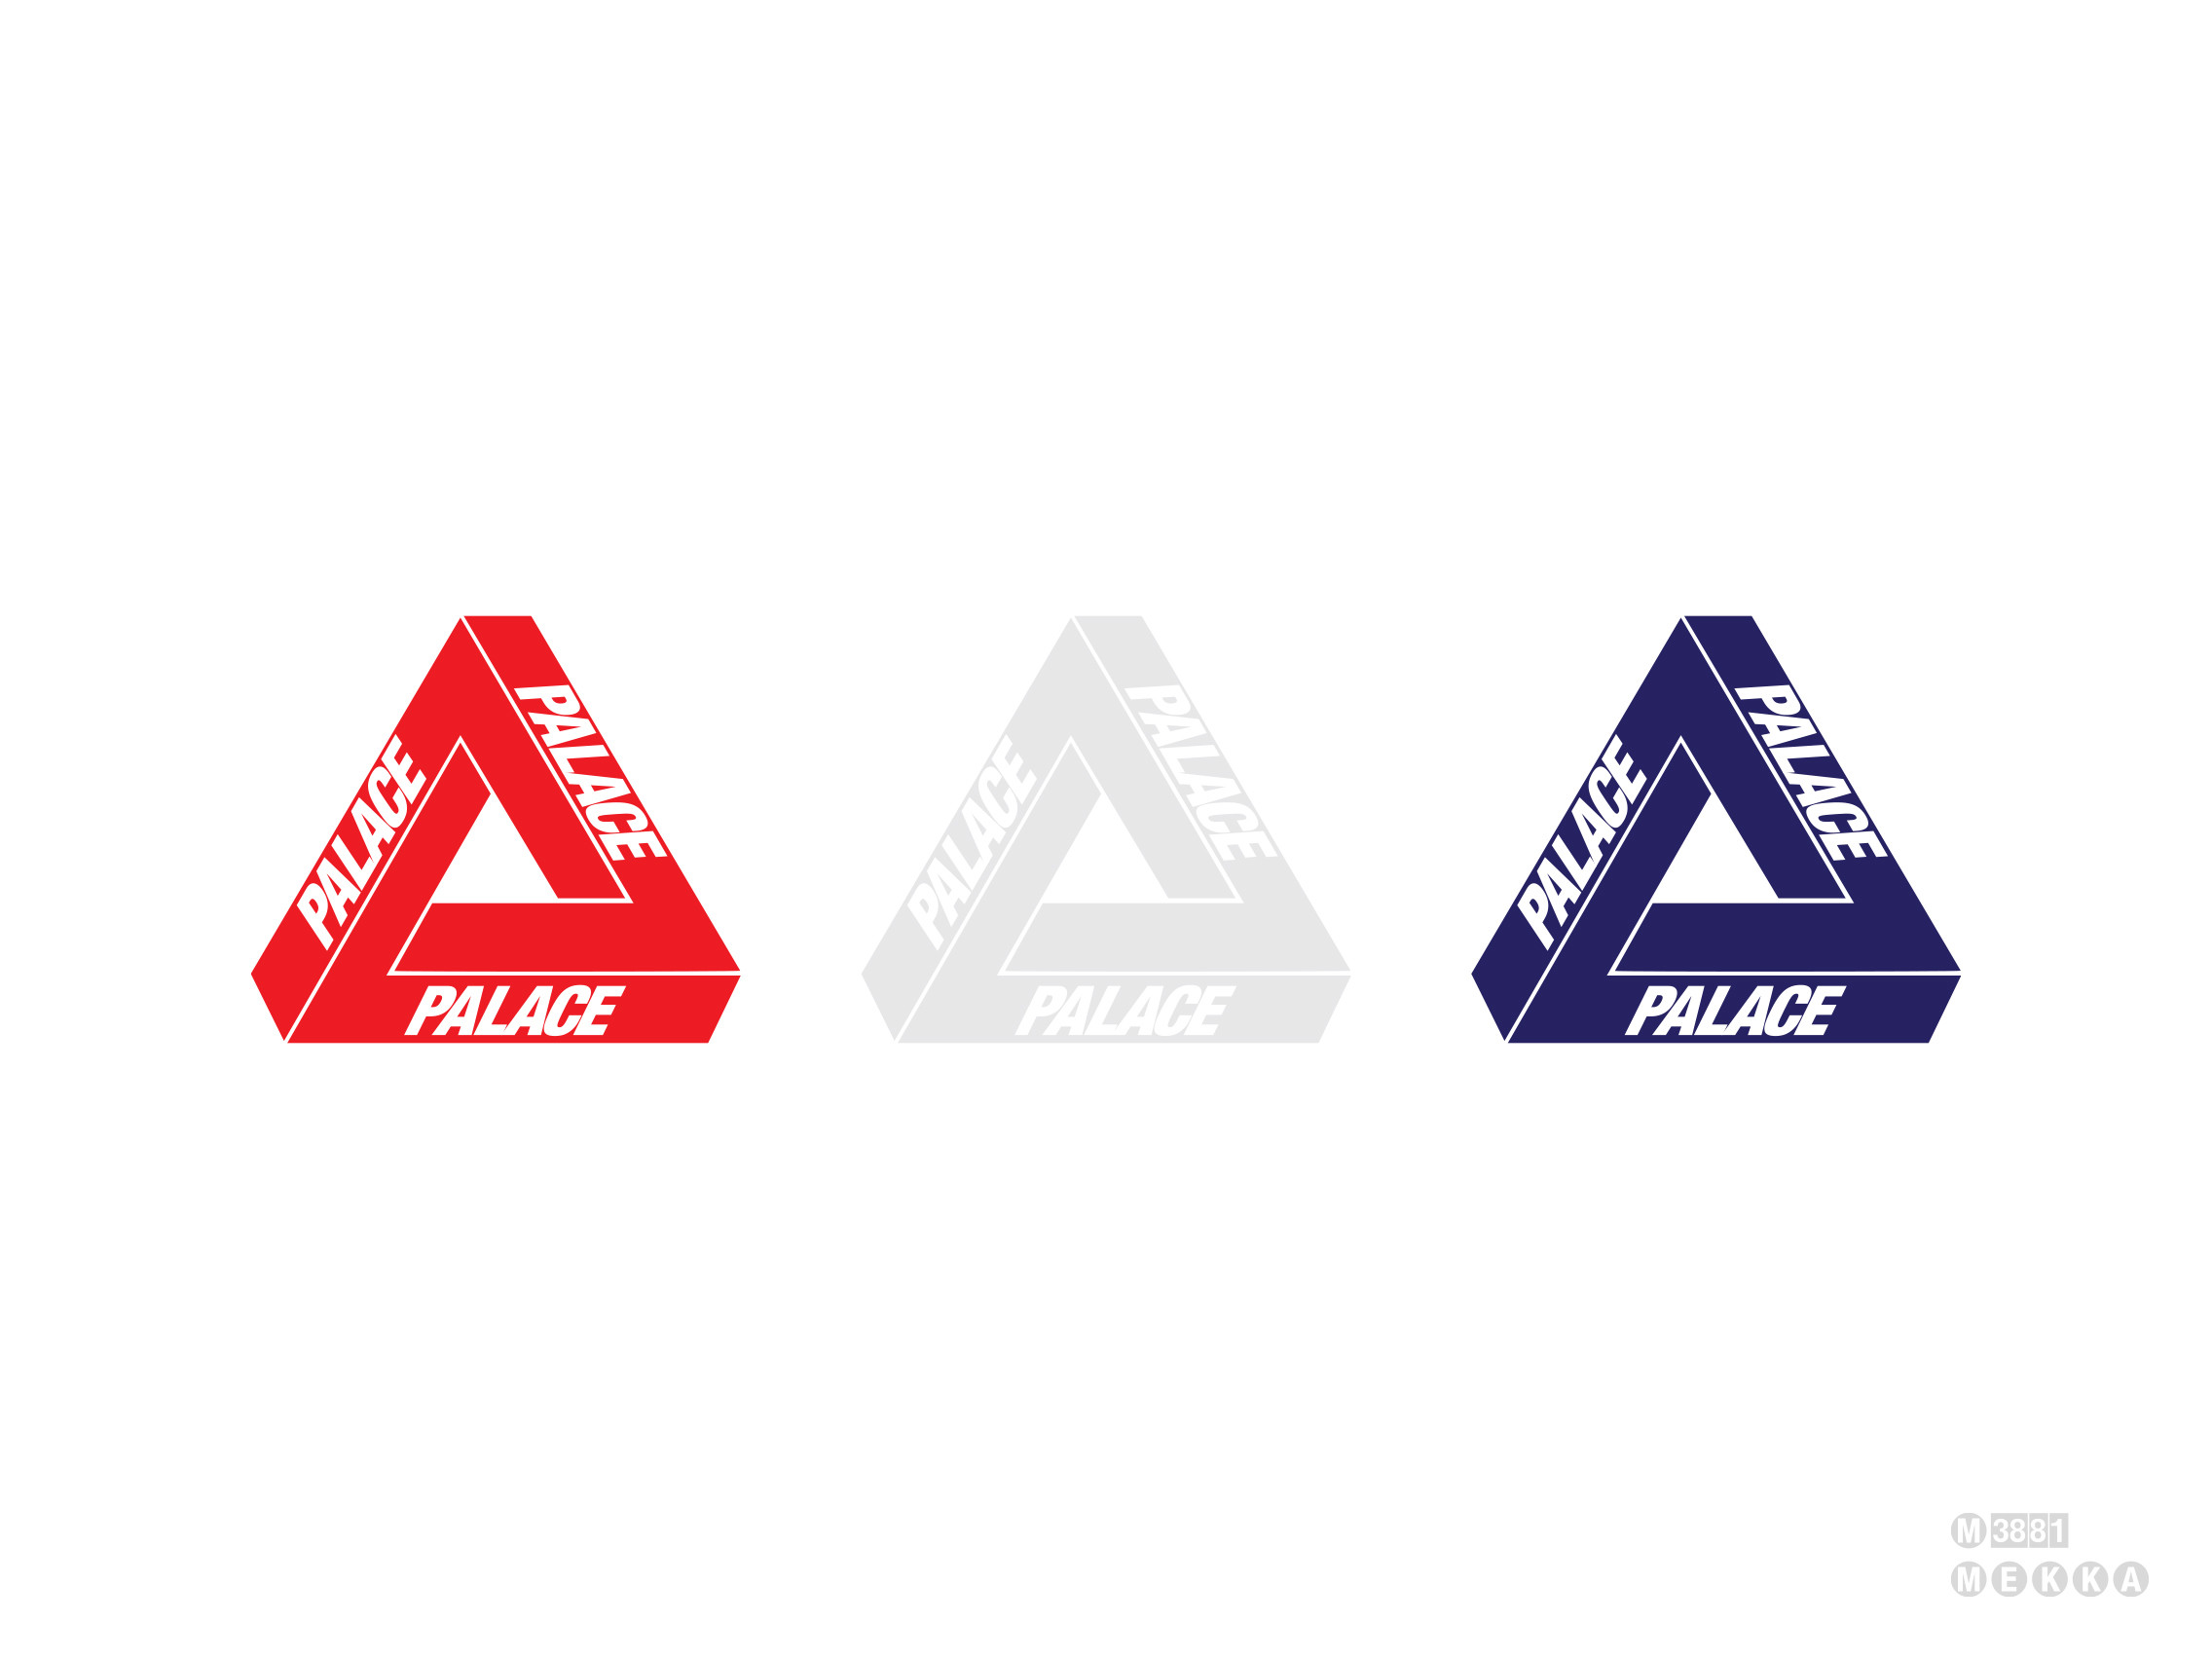 Palace Skateboards Wallpaper 68 Images